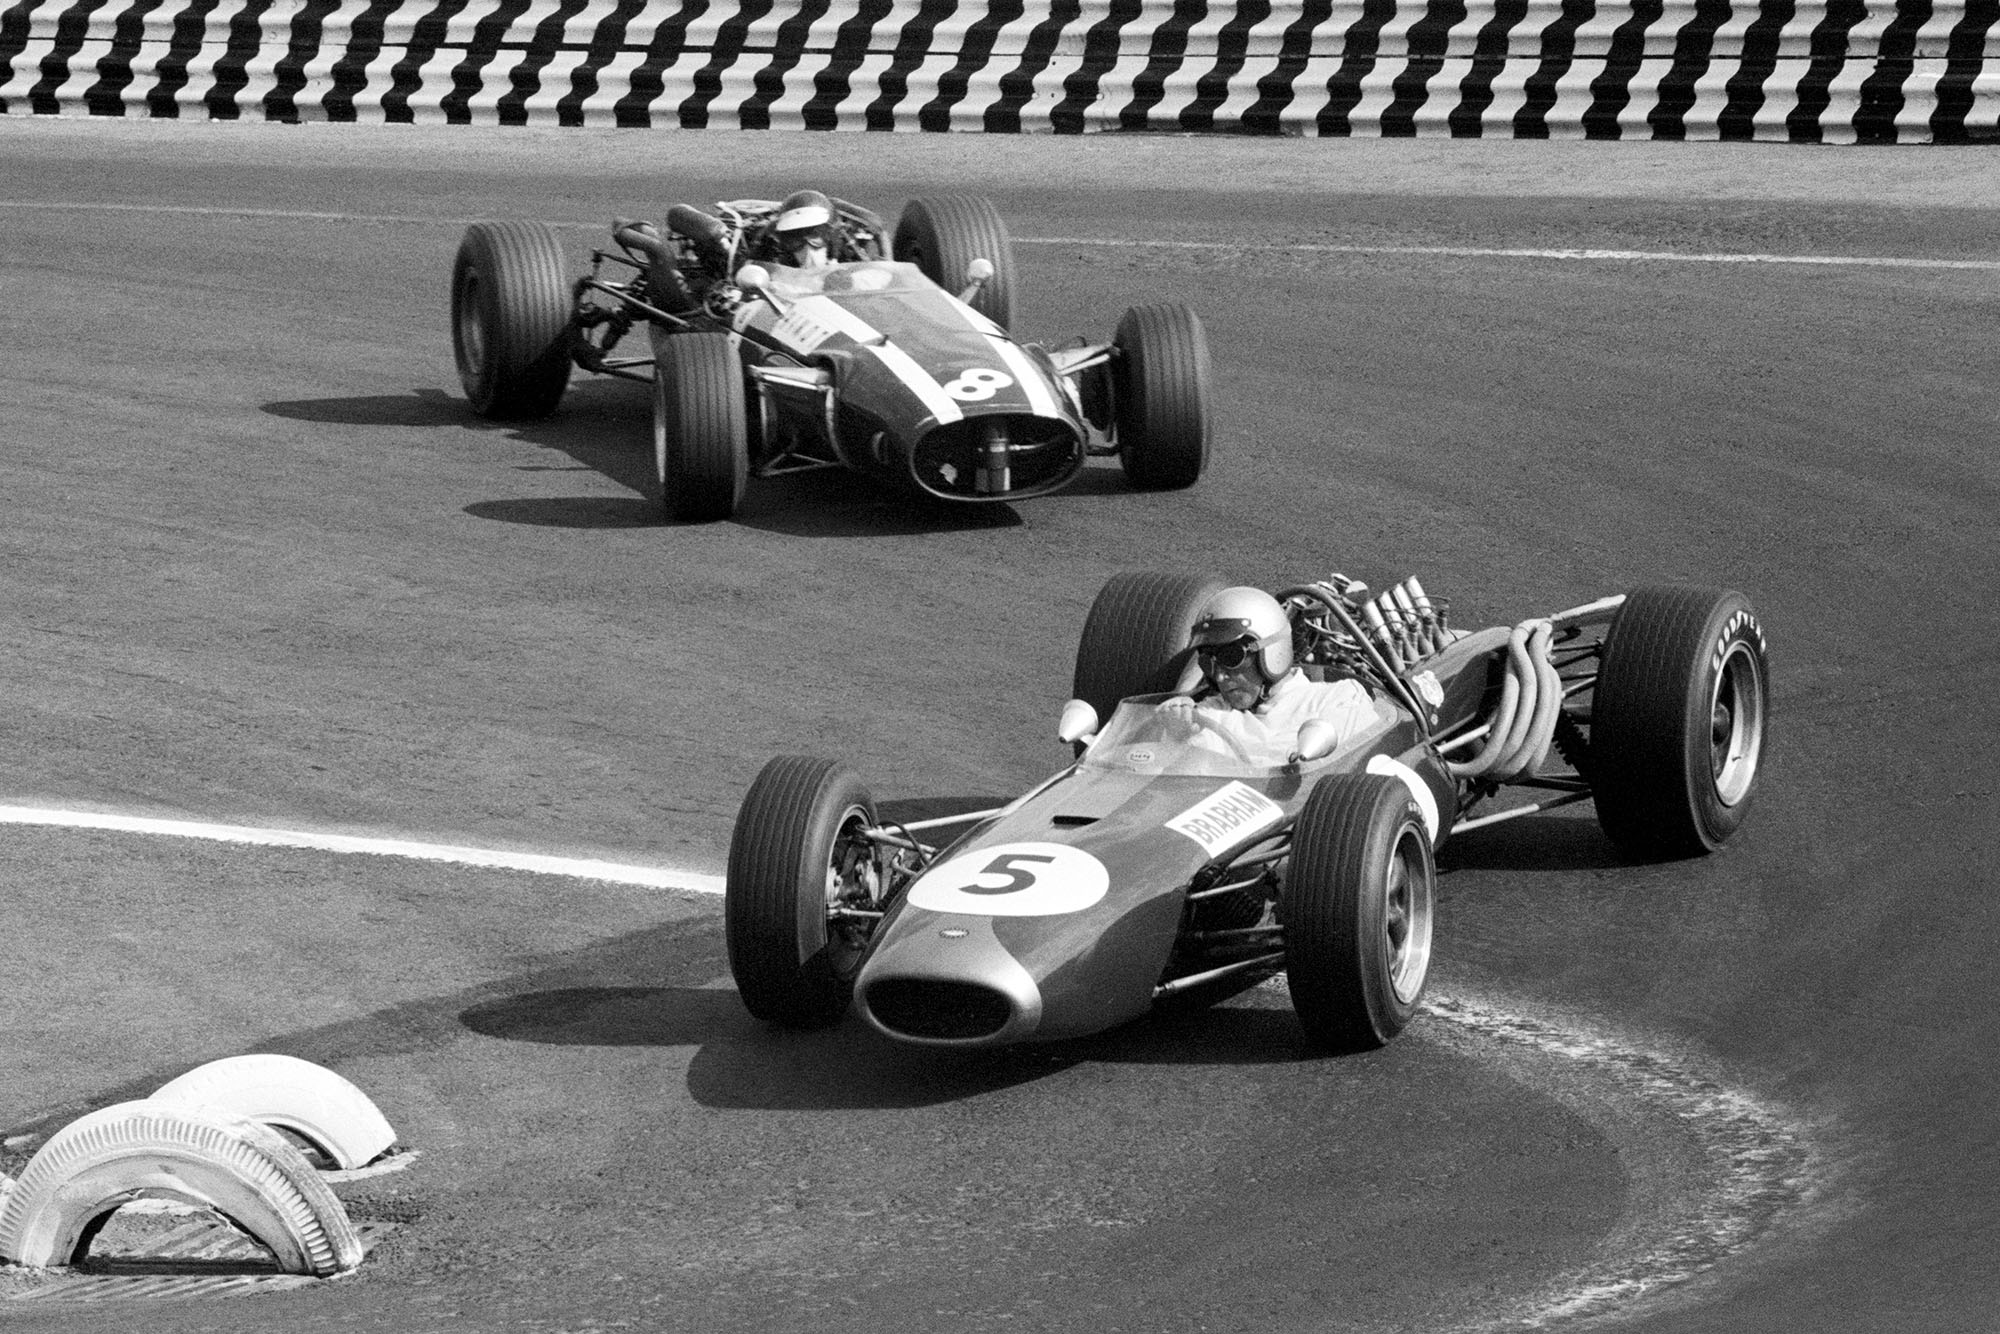 Second placed Jack Brabham (AUS) Brabham BT20 leads Jochen Rindt (AUT) who retired on lap 32 with a broken suspension.